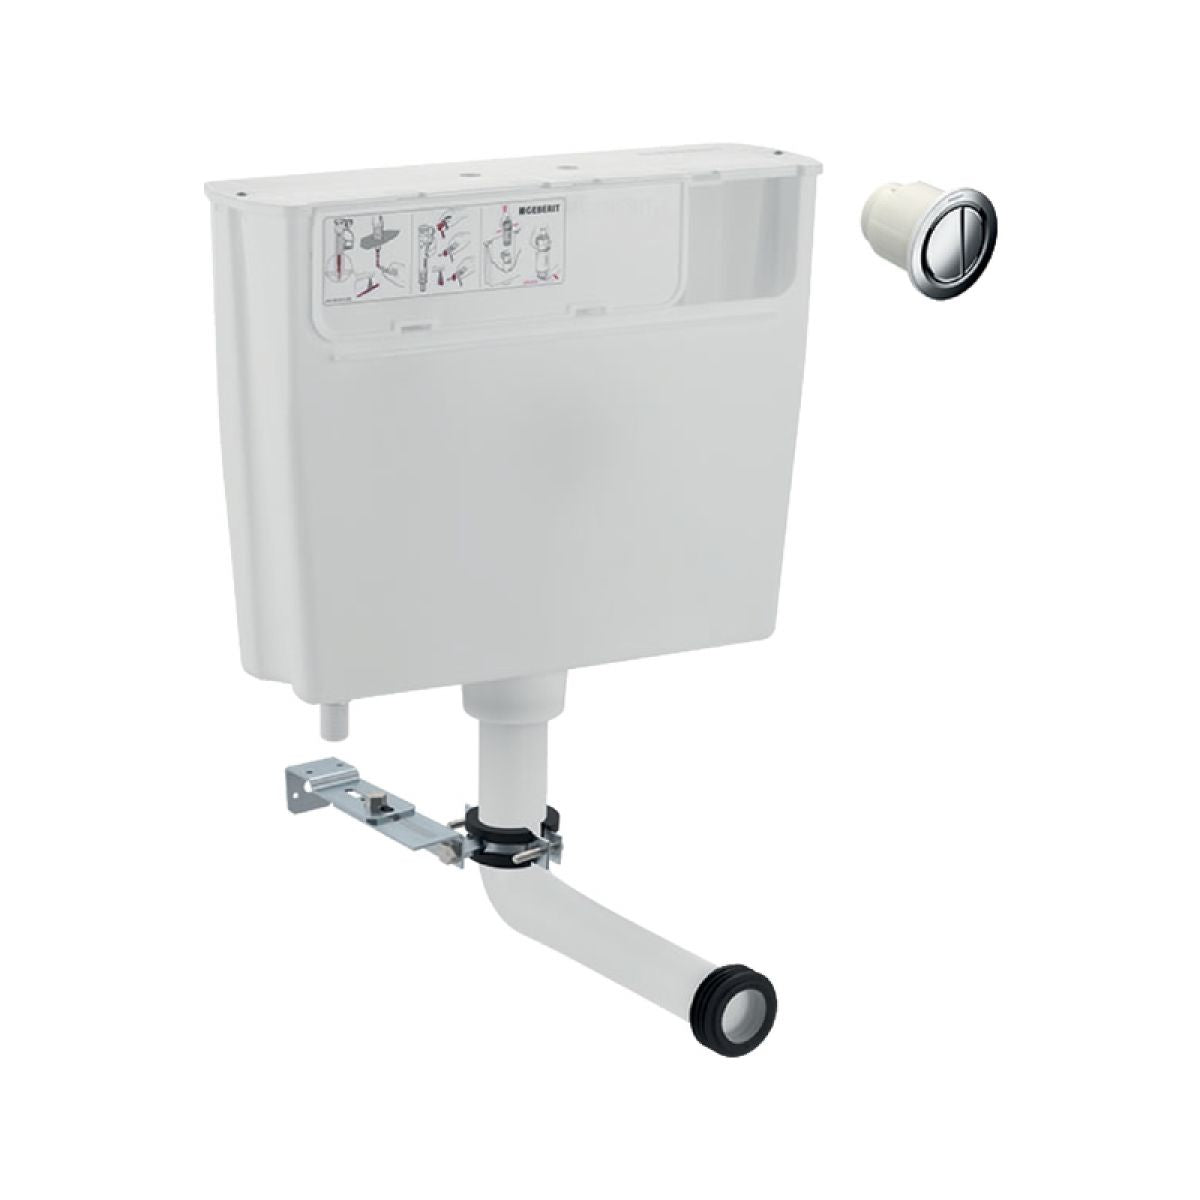 Image of Geberit Duofix Concealed Cistern for Furniture